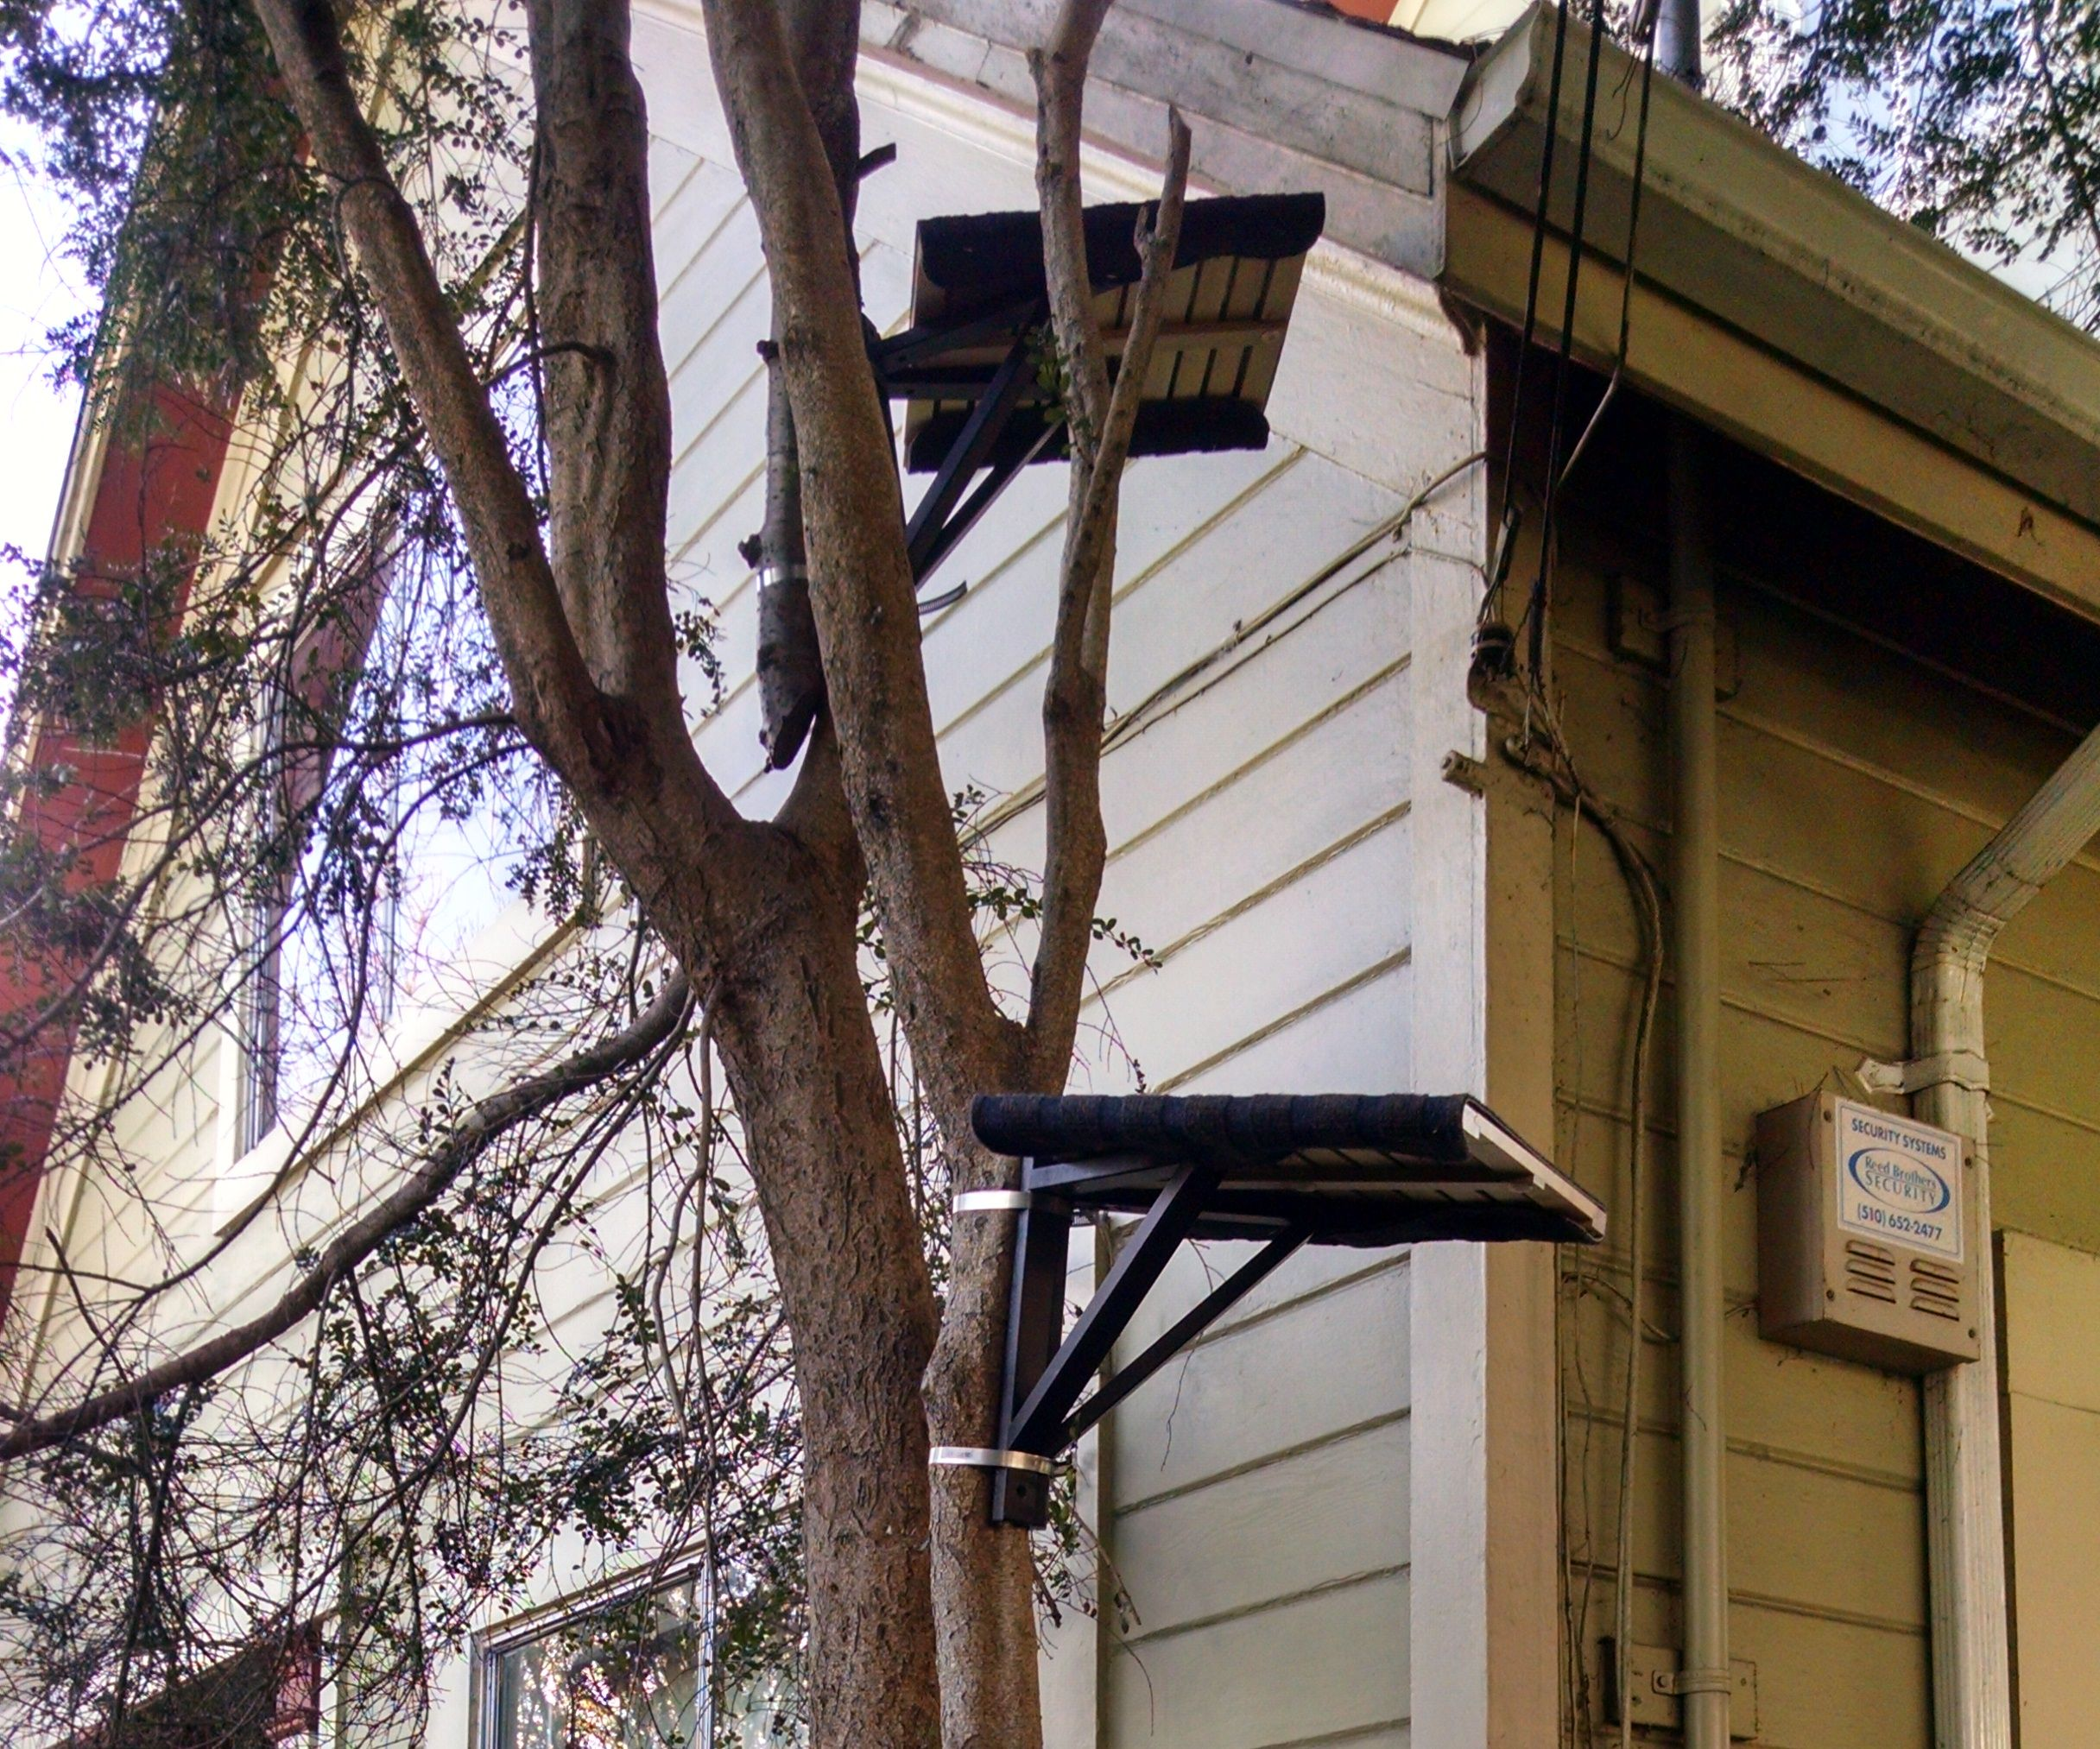 How to Turn a Real Live Tree into a Cat Tree w/Hose Clamps and Ikea Shelving